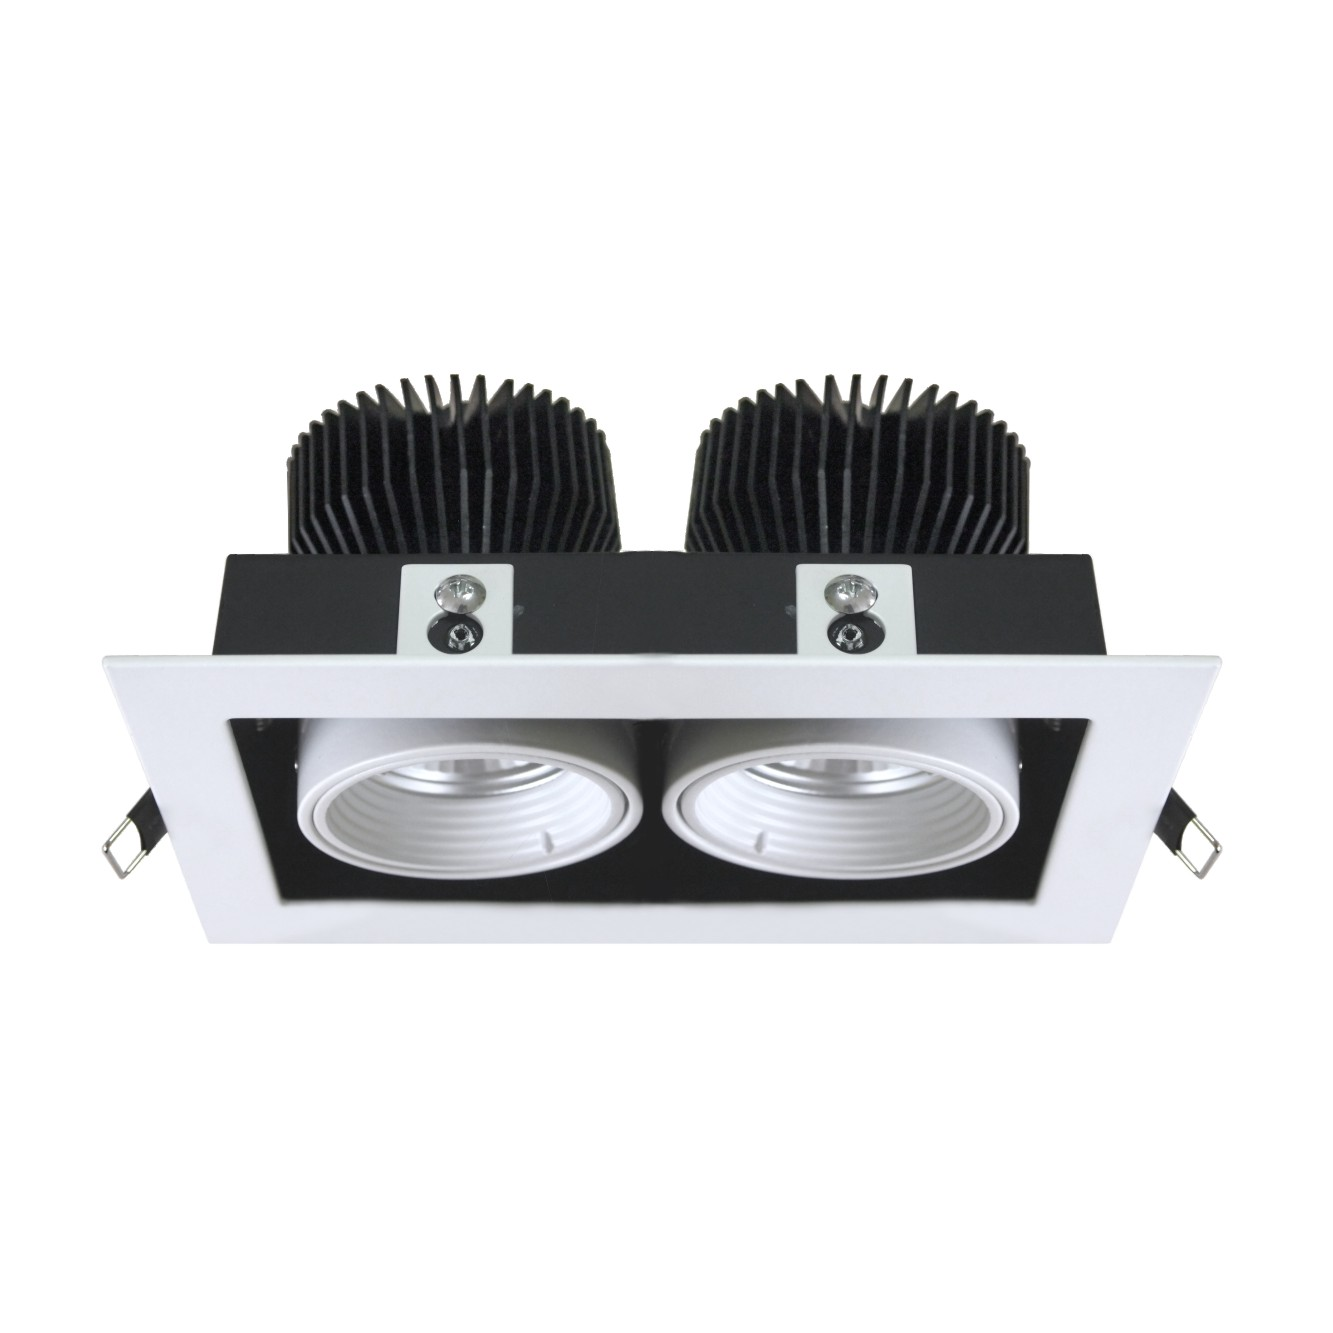 LD5812  sc 1 st  Widegerm Lighting Limited - Your reliable partner for shop display ... & Widegerm Lighting Limited - Your reliable partner for shop display ... azcodes.com